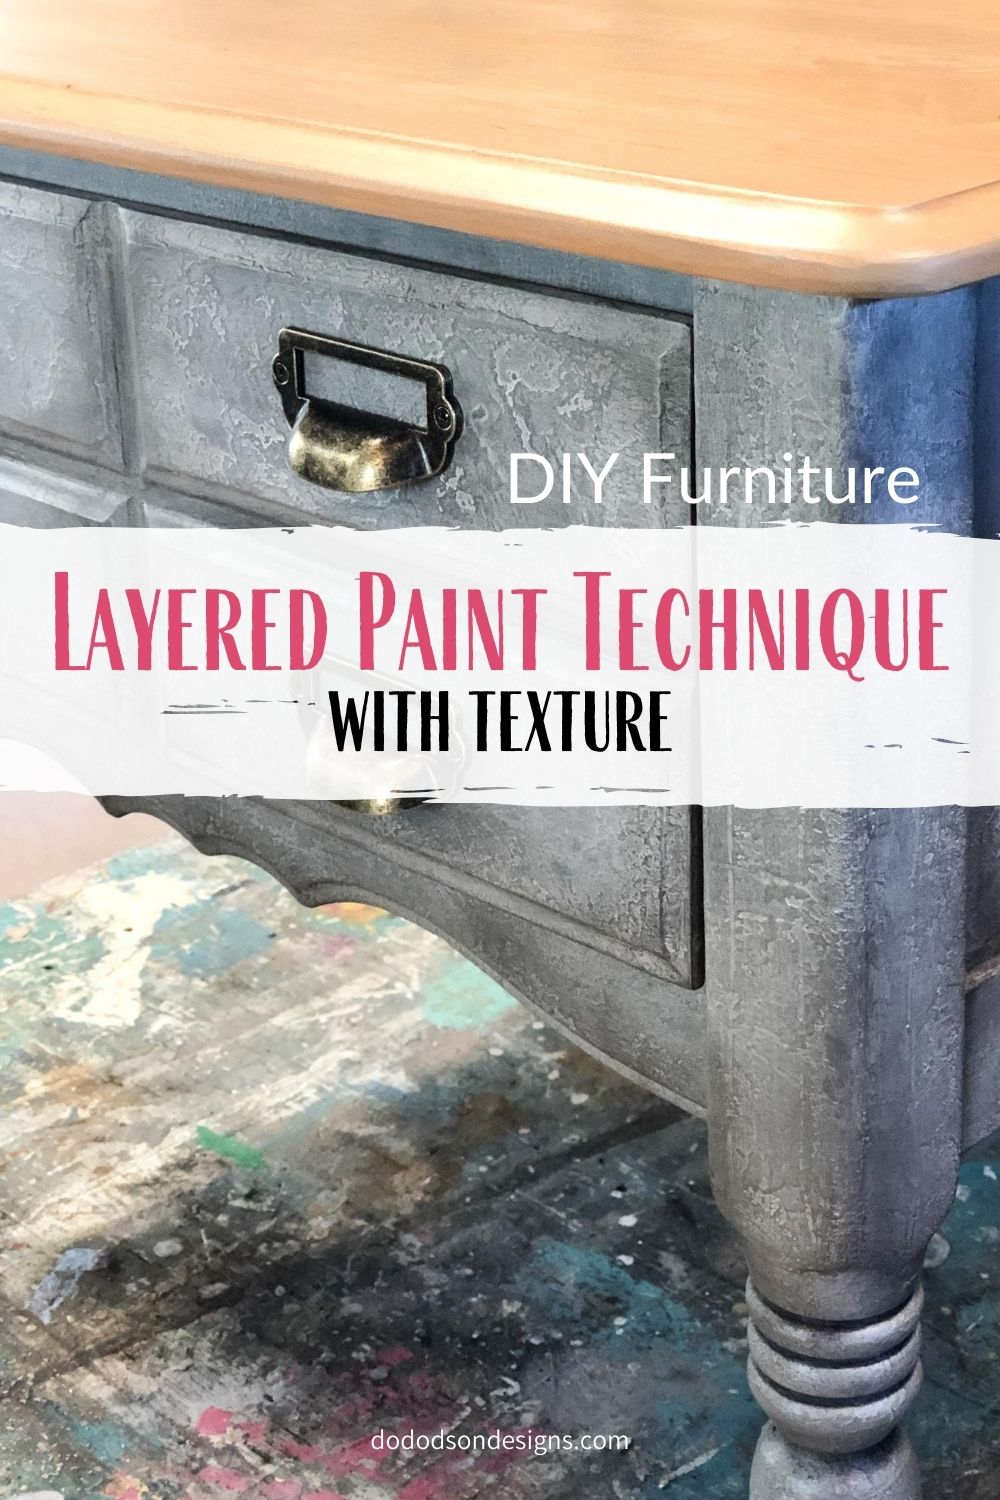 Layered Paint Technique With Texture - Restoration Hardware Finish